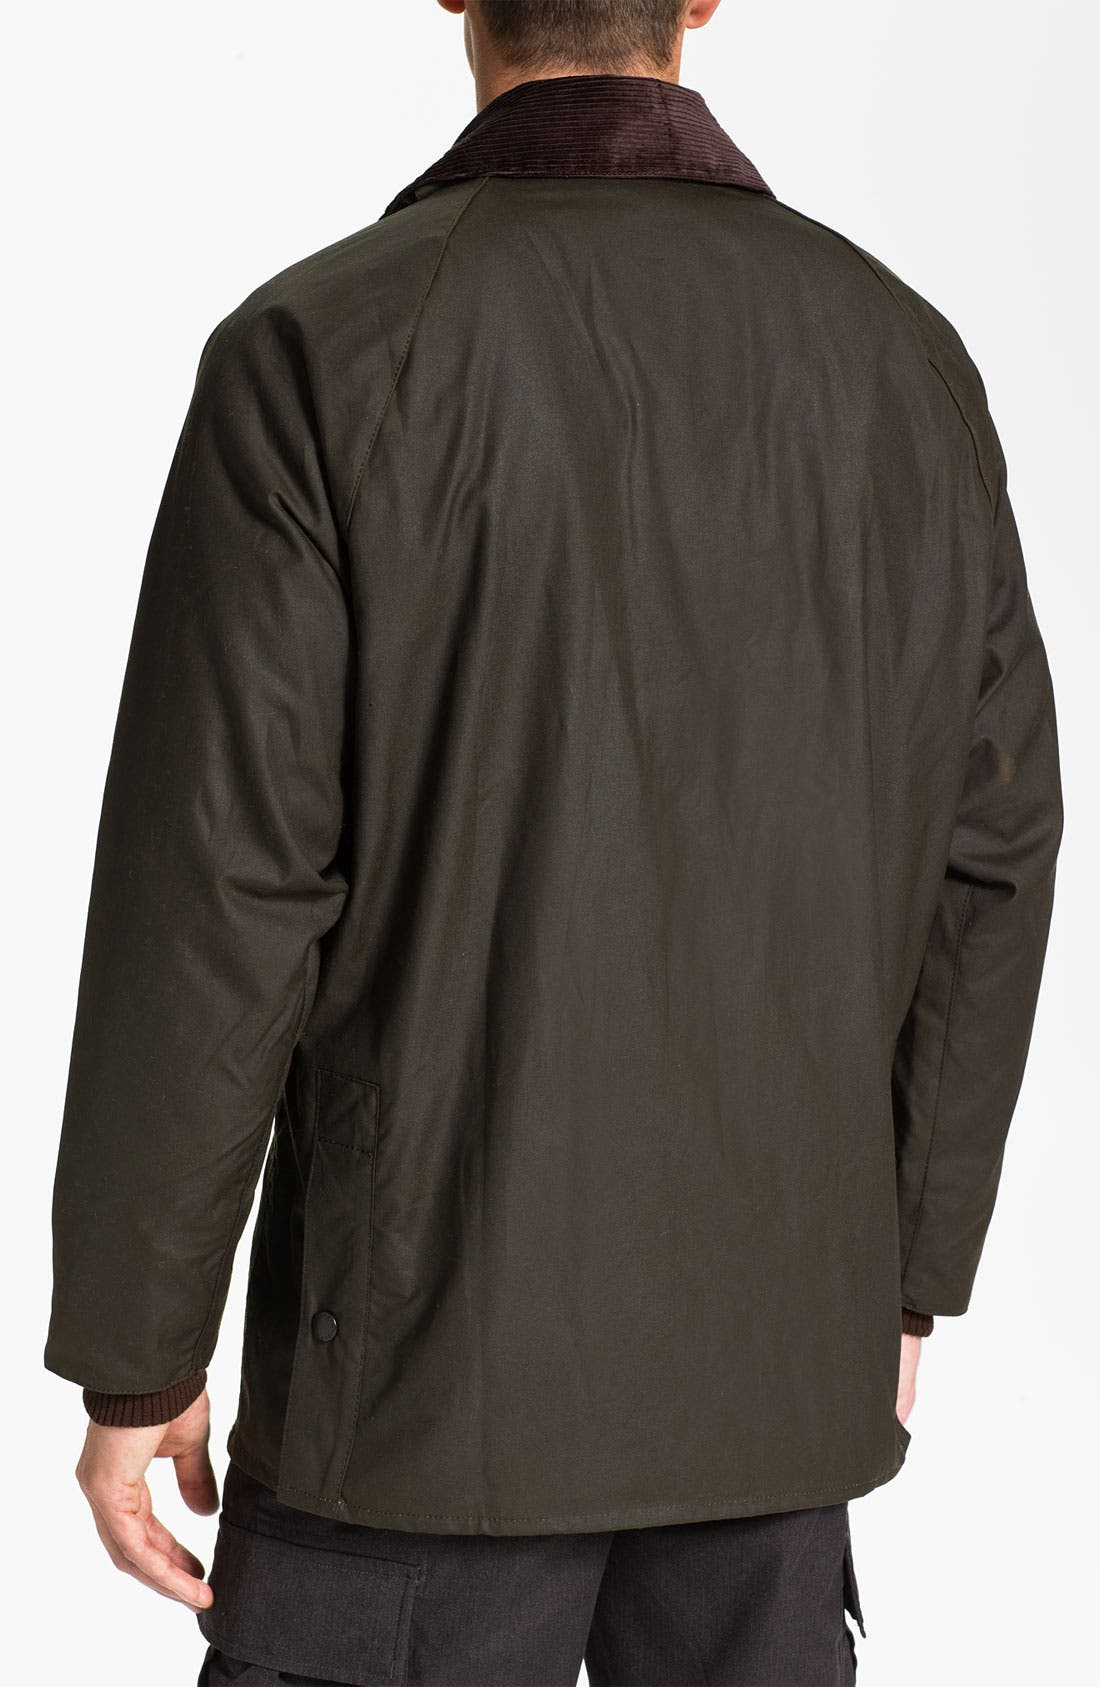 'Bedale' Relaxed Fit Waterproof Waxed Cotton Jacket,                             Alternate thumbnail 2, color,                             301